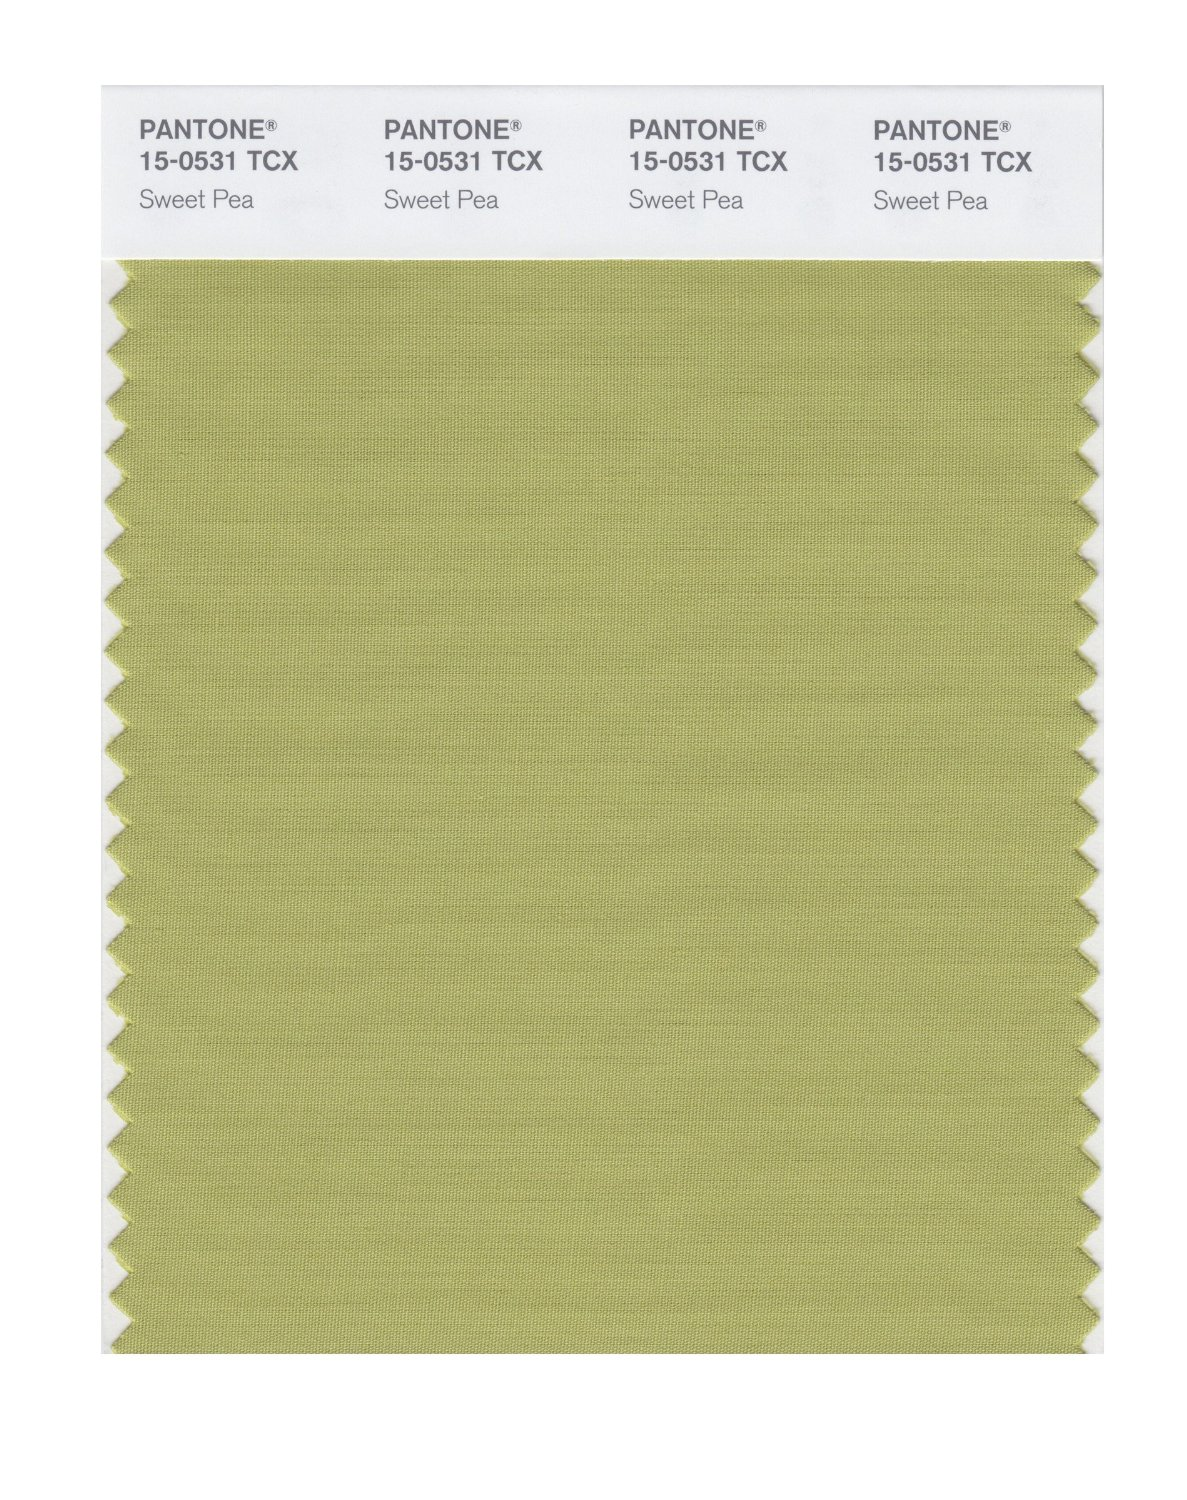 Pantone Smart Swatch 15-0531 Sweet Pea